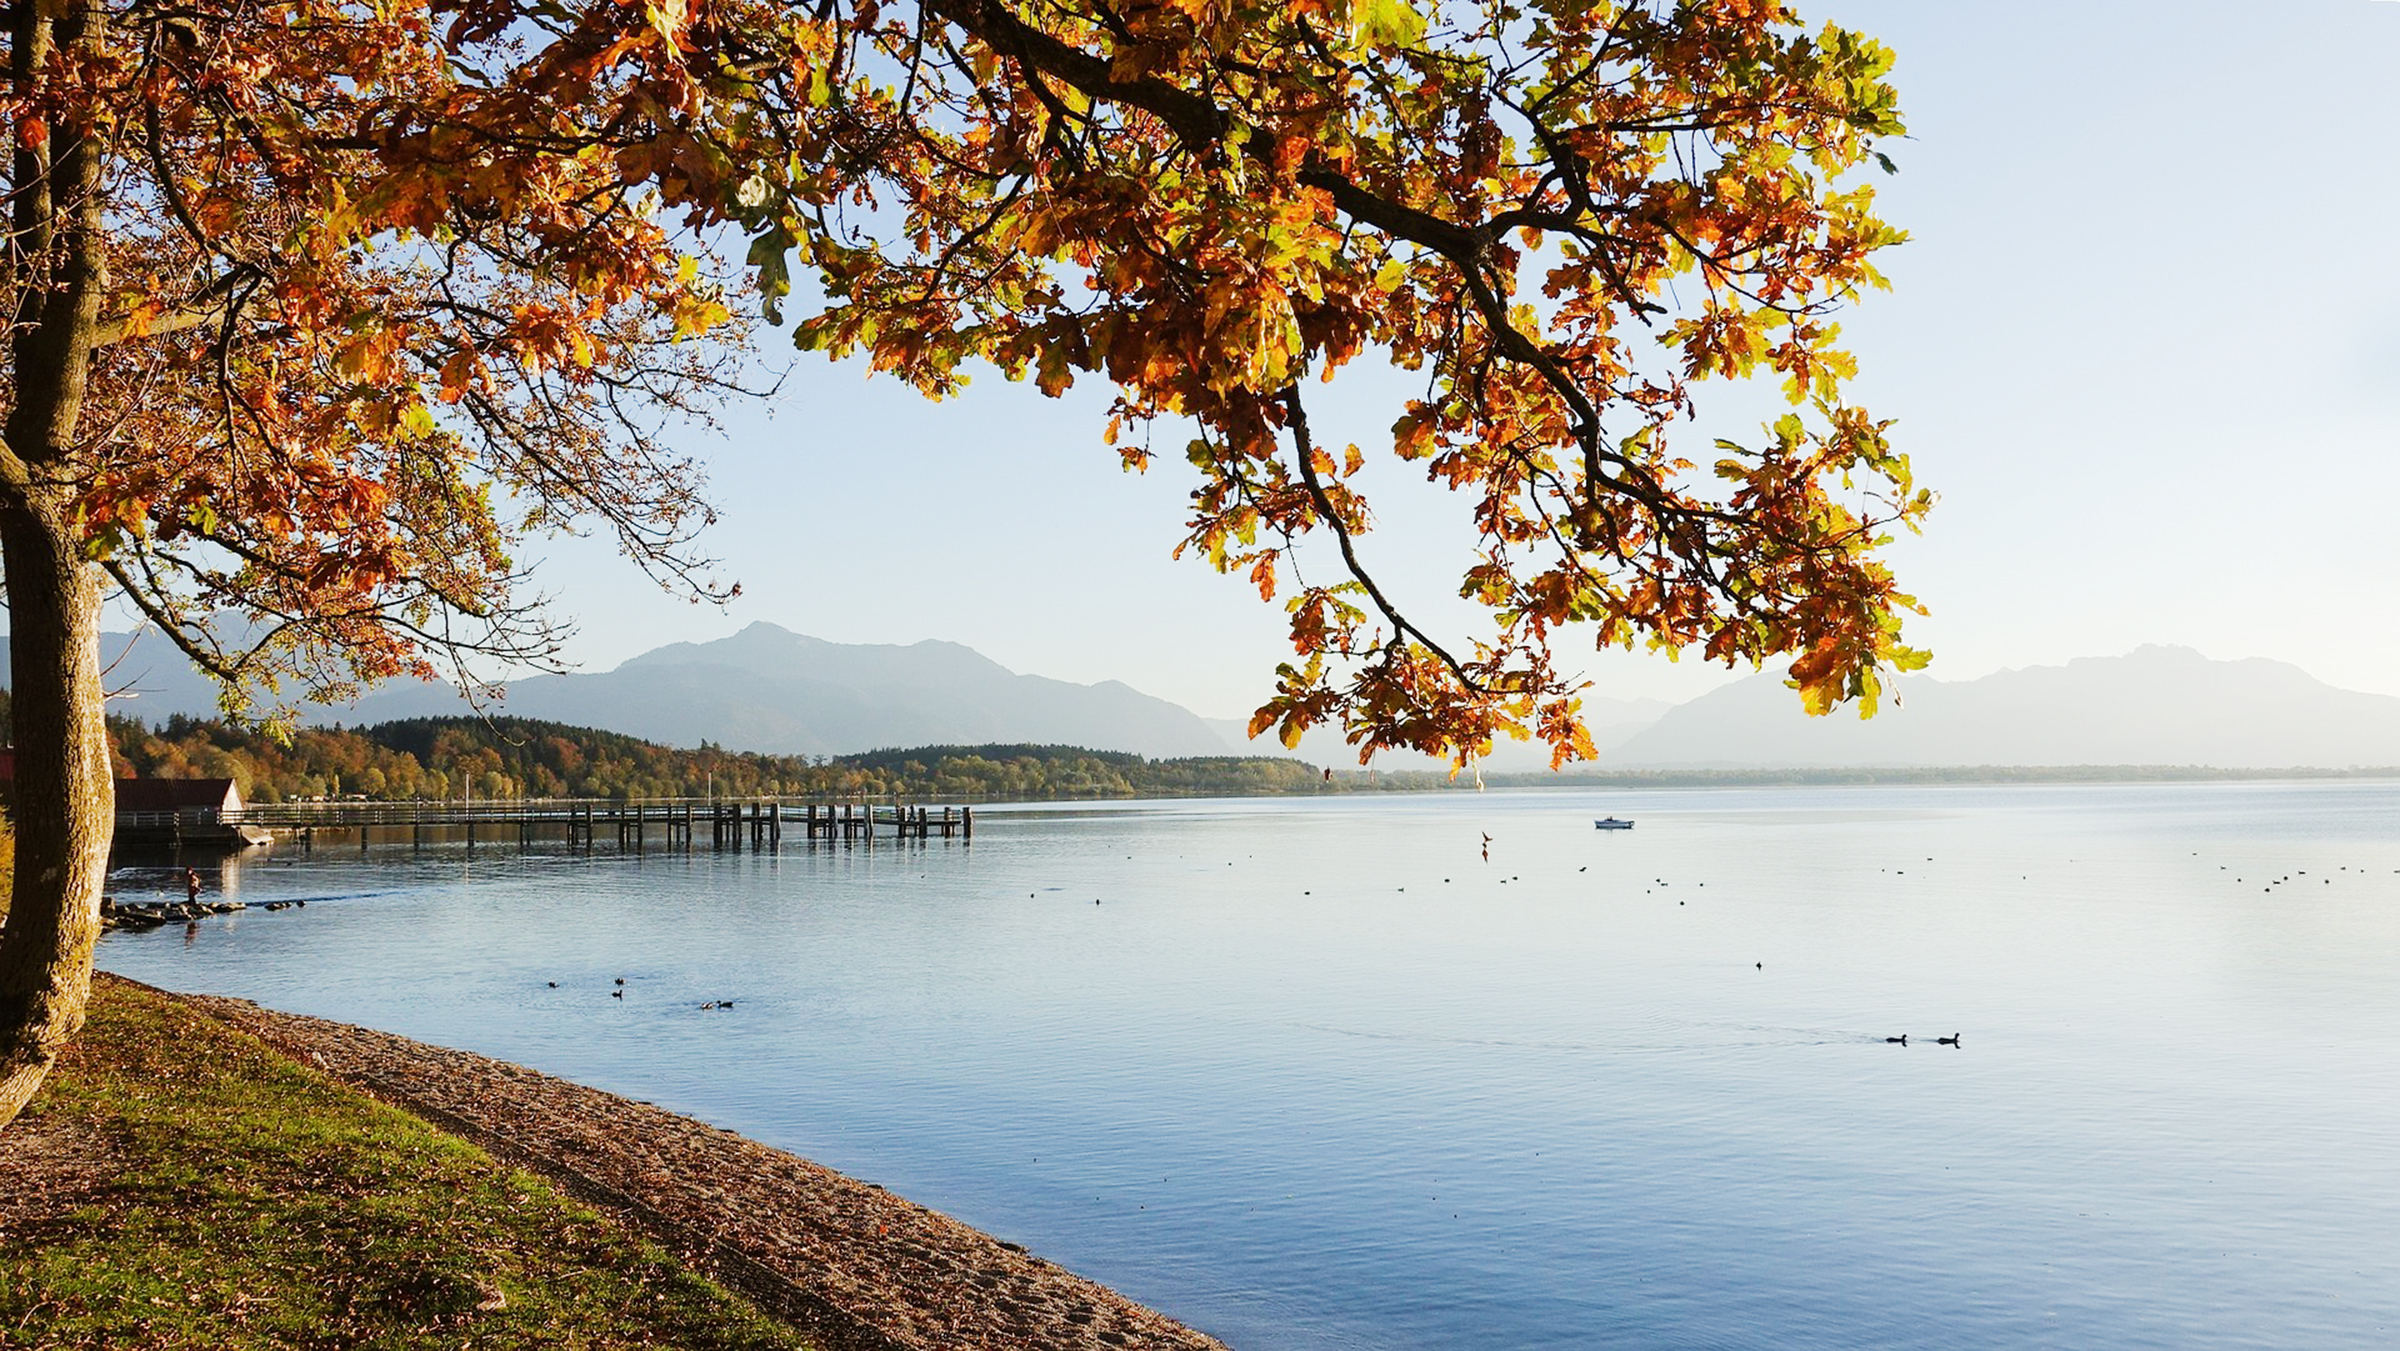 Herbststimmung am Chiemsee